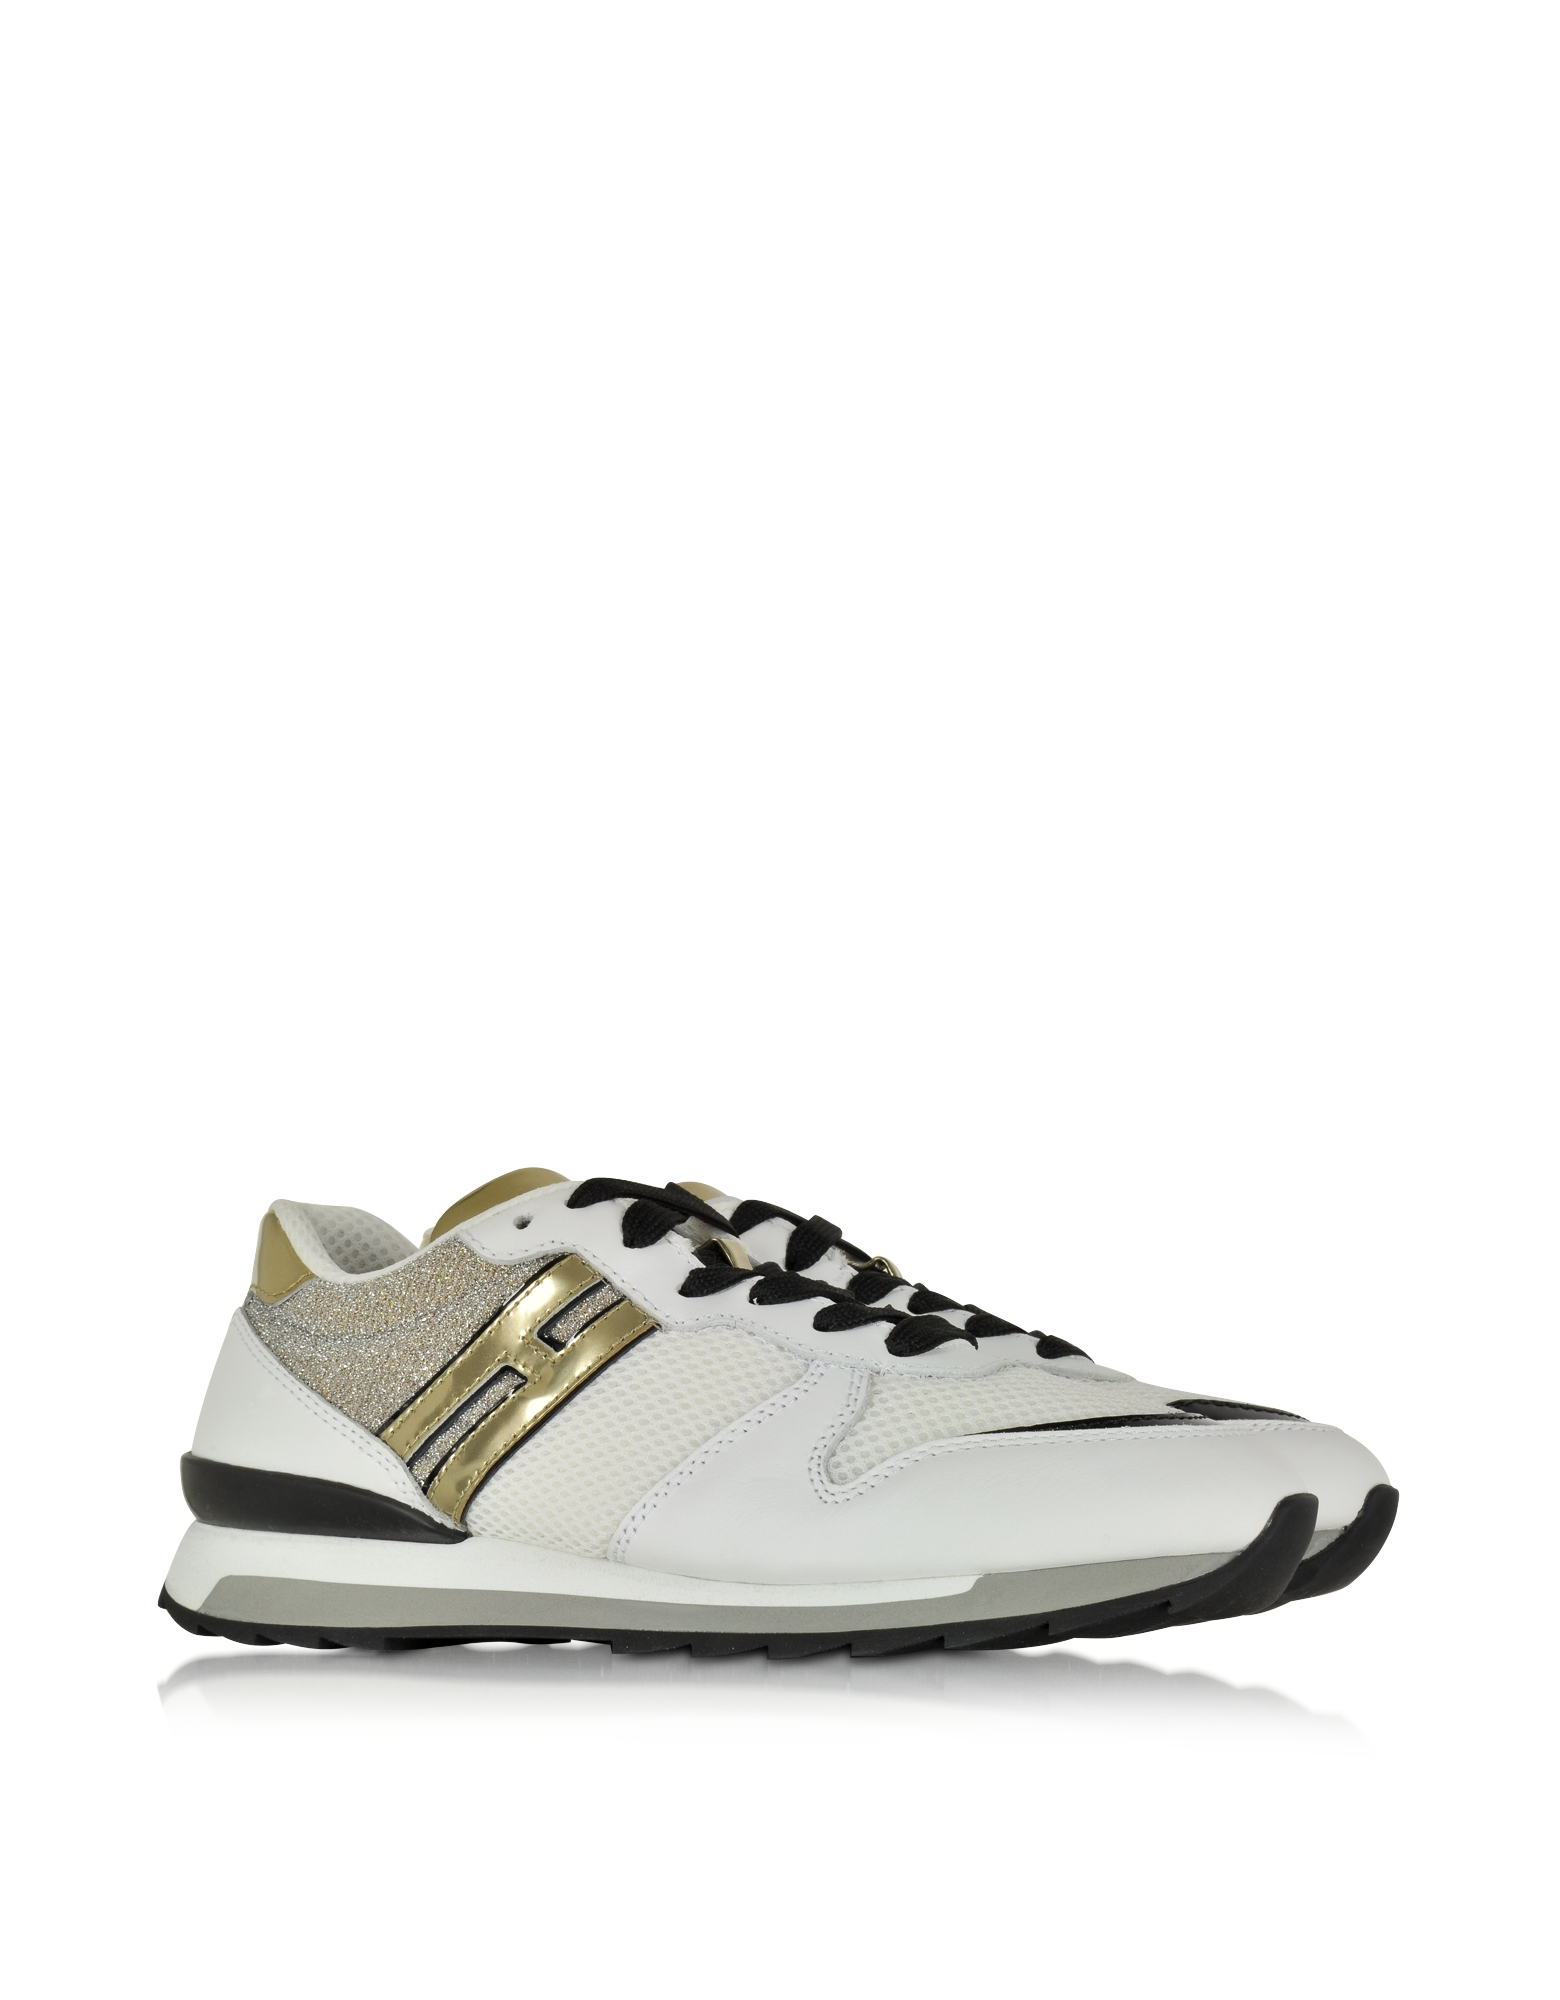 Forzieri Hogan Hogan Rebel White Fabric And Leather Sneaker In White Lyst